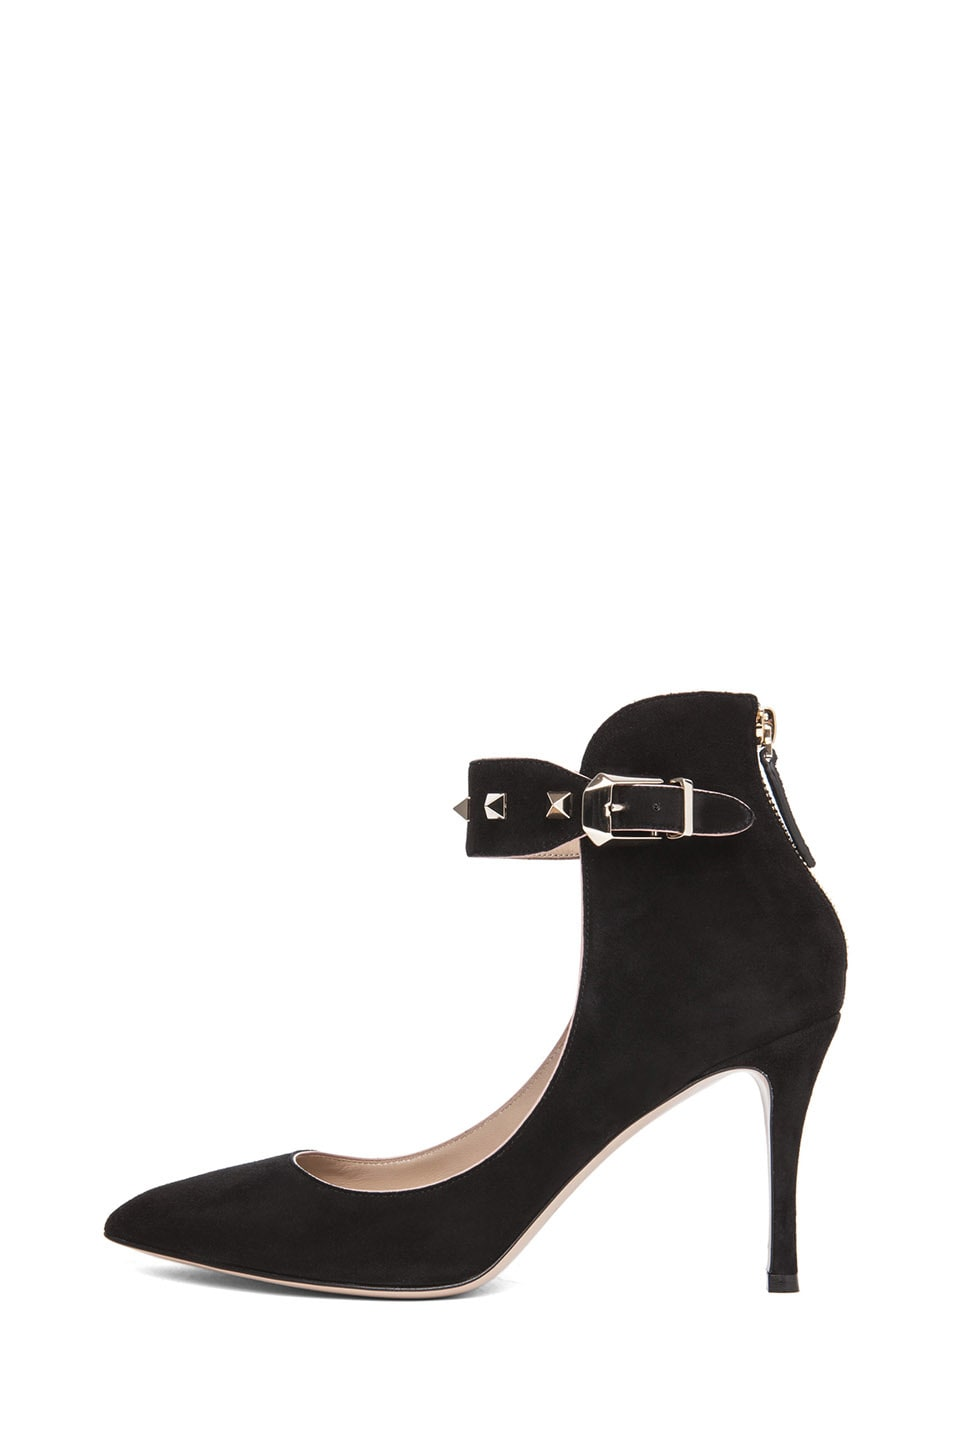 Image 1 of Valentino Rockstud Suede Ankle Strap Pump in Black Suede